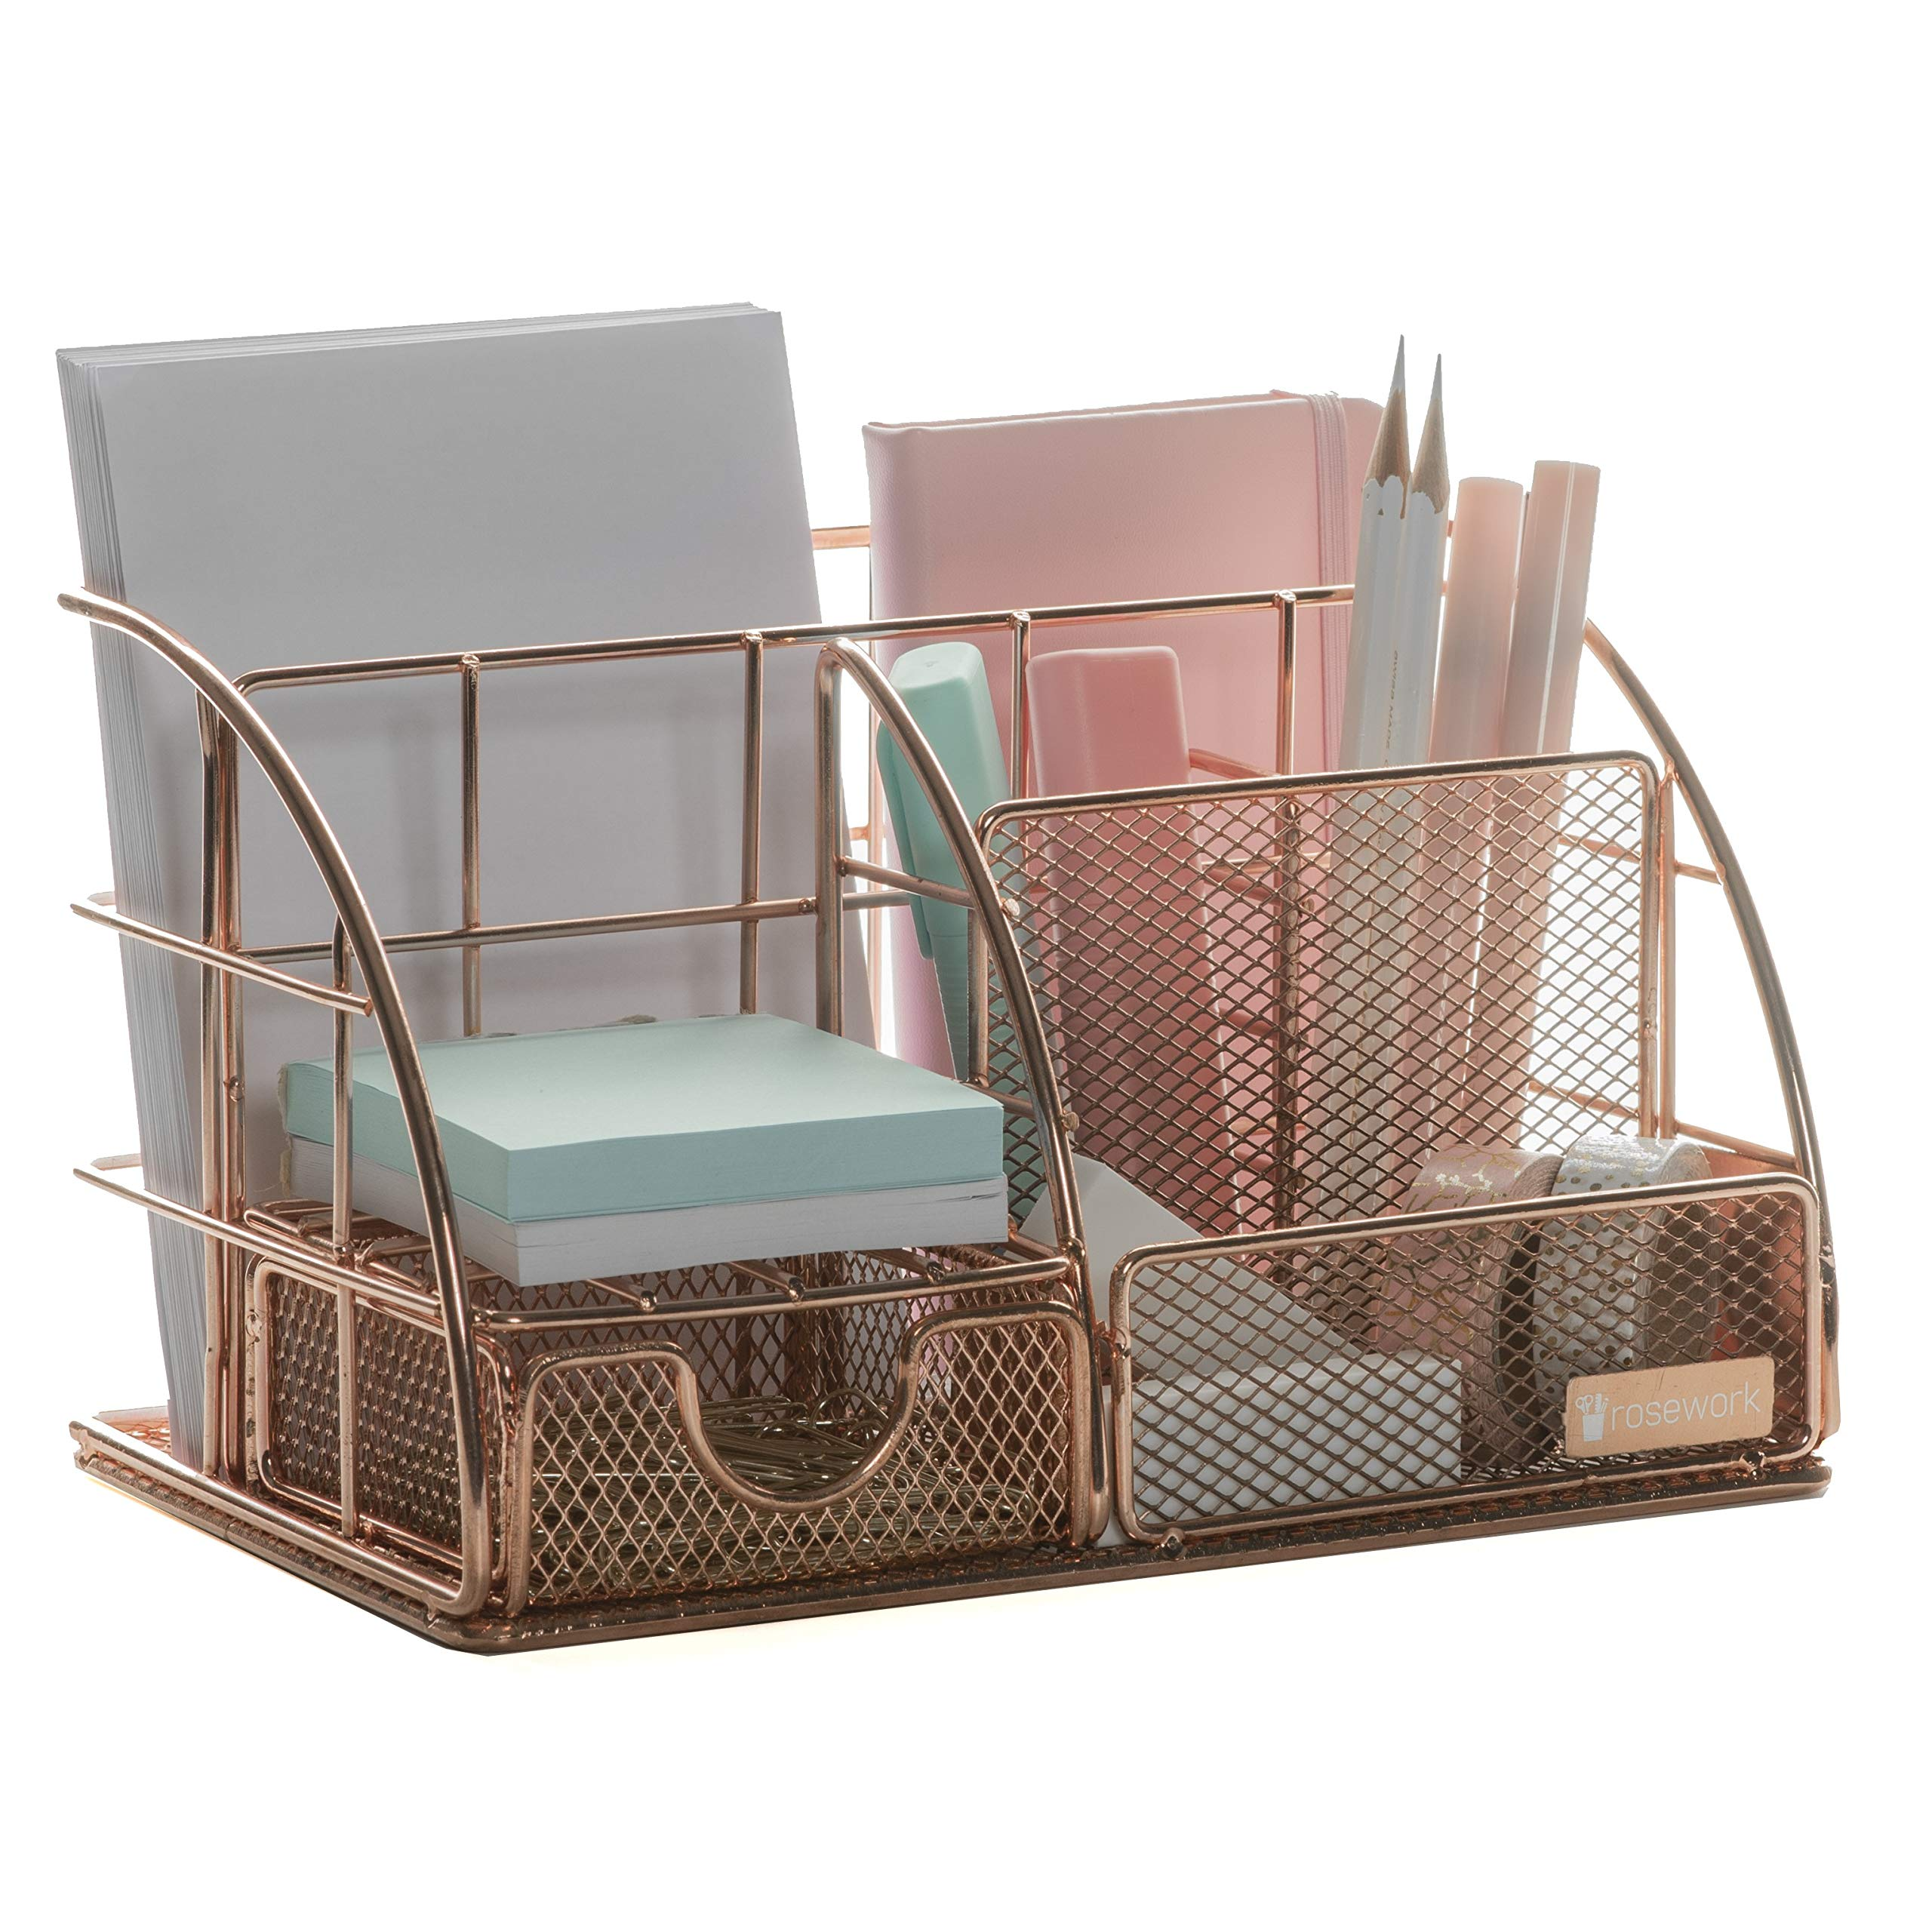 Rose Gold Desk Organizer for Women, All in One Desktop Organizer with Pen Holder, Pencil Holder, Paper Organizer and Desk Drawer Organizer, Office Organizer for Office Supplies and Desk Accessories. by Rosework